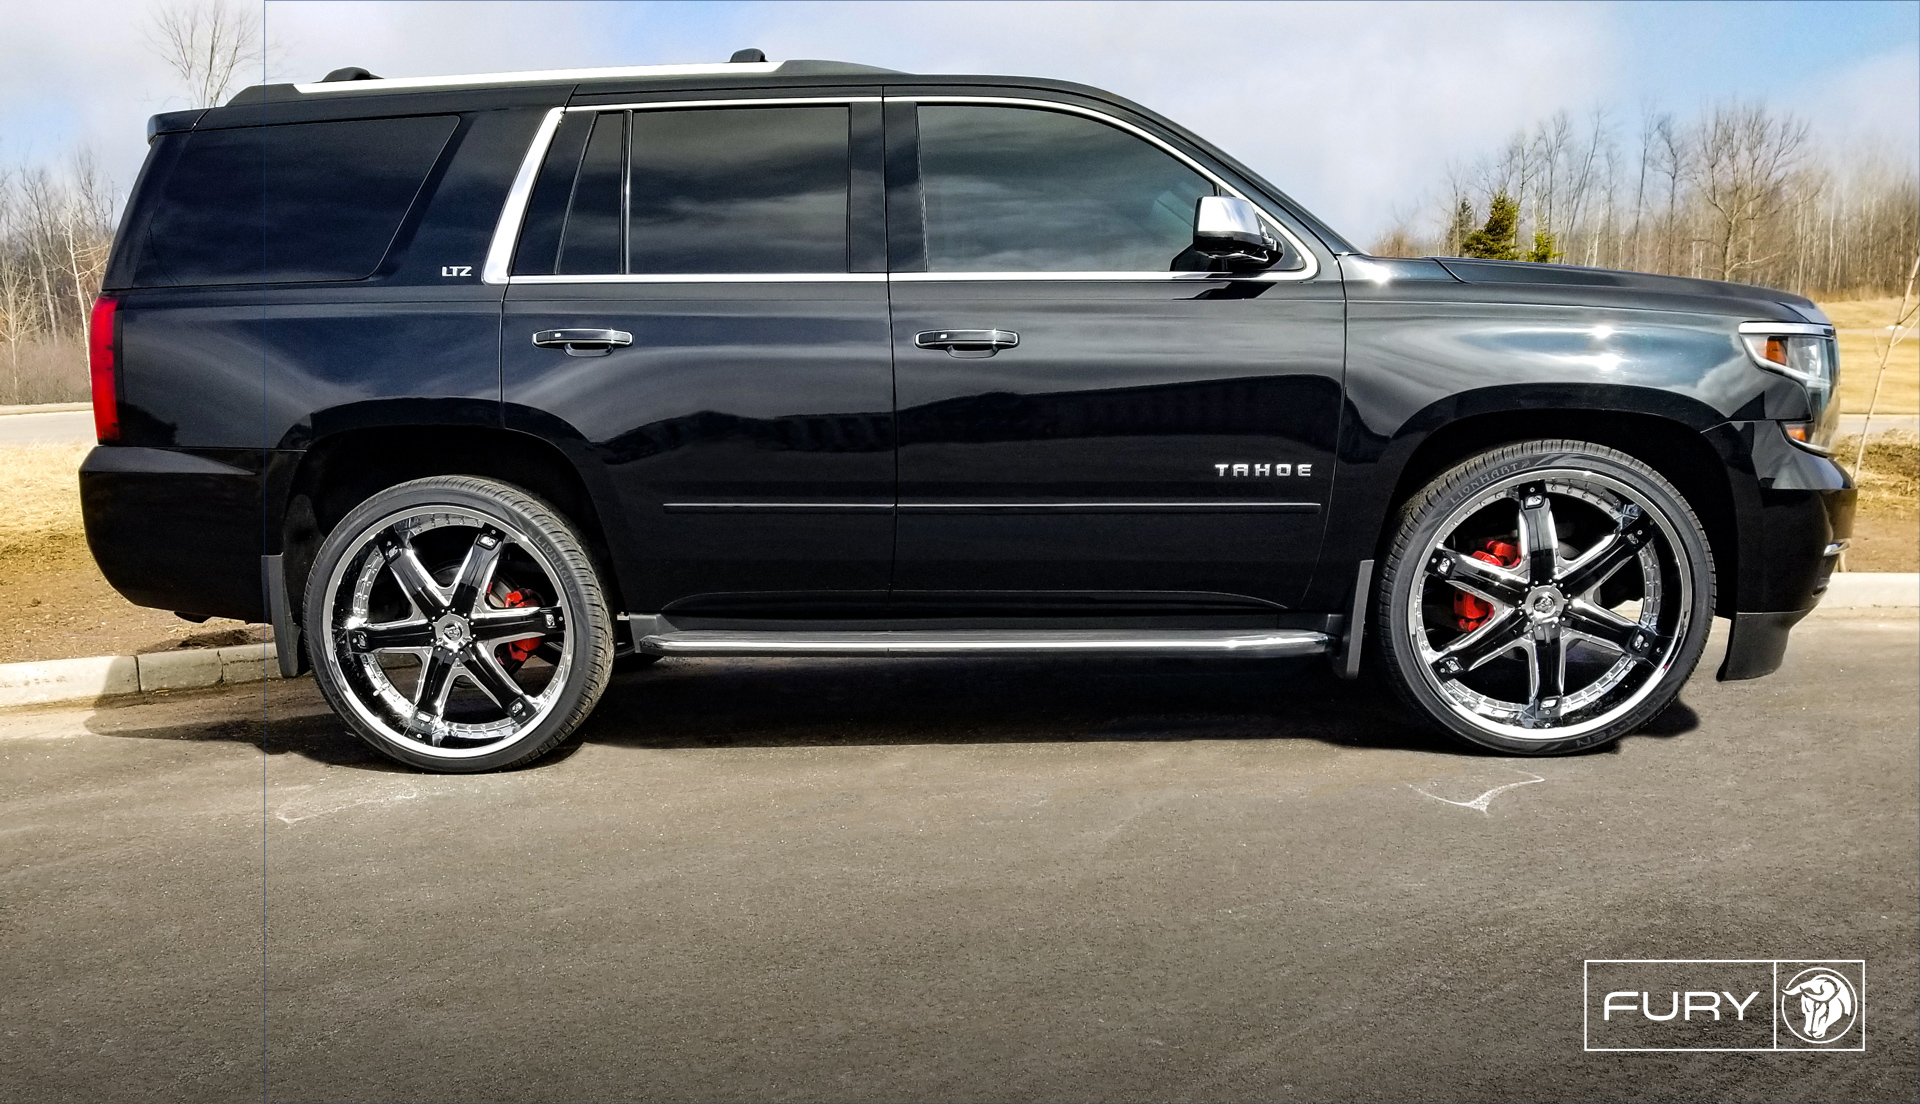 Diablo Wheels - Fury on a Black Chevrolet Tahoe LTZ